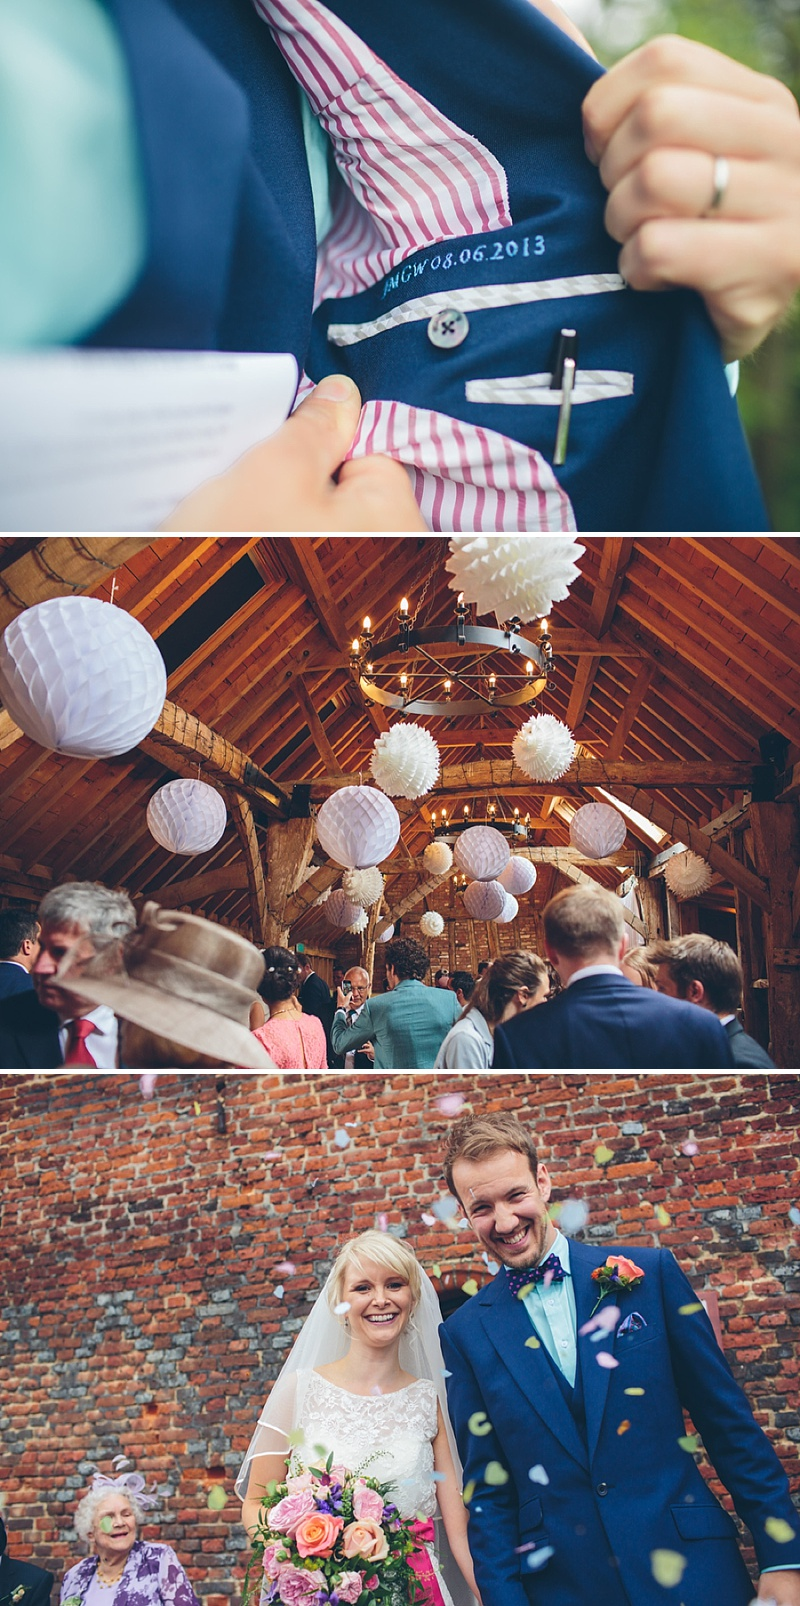 Colourful Rustic Wedding At The Rickety Barn Cambridgeshire Bride In Benjamin Roberts Gown Groom In Navy Cad And The Dandy Suit Images By Richard Skins029